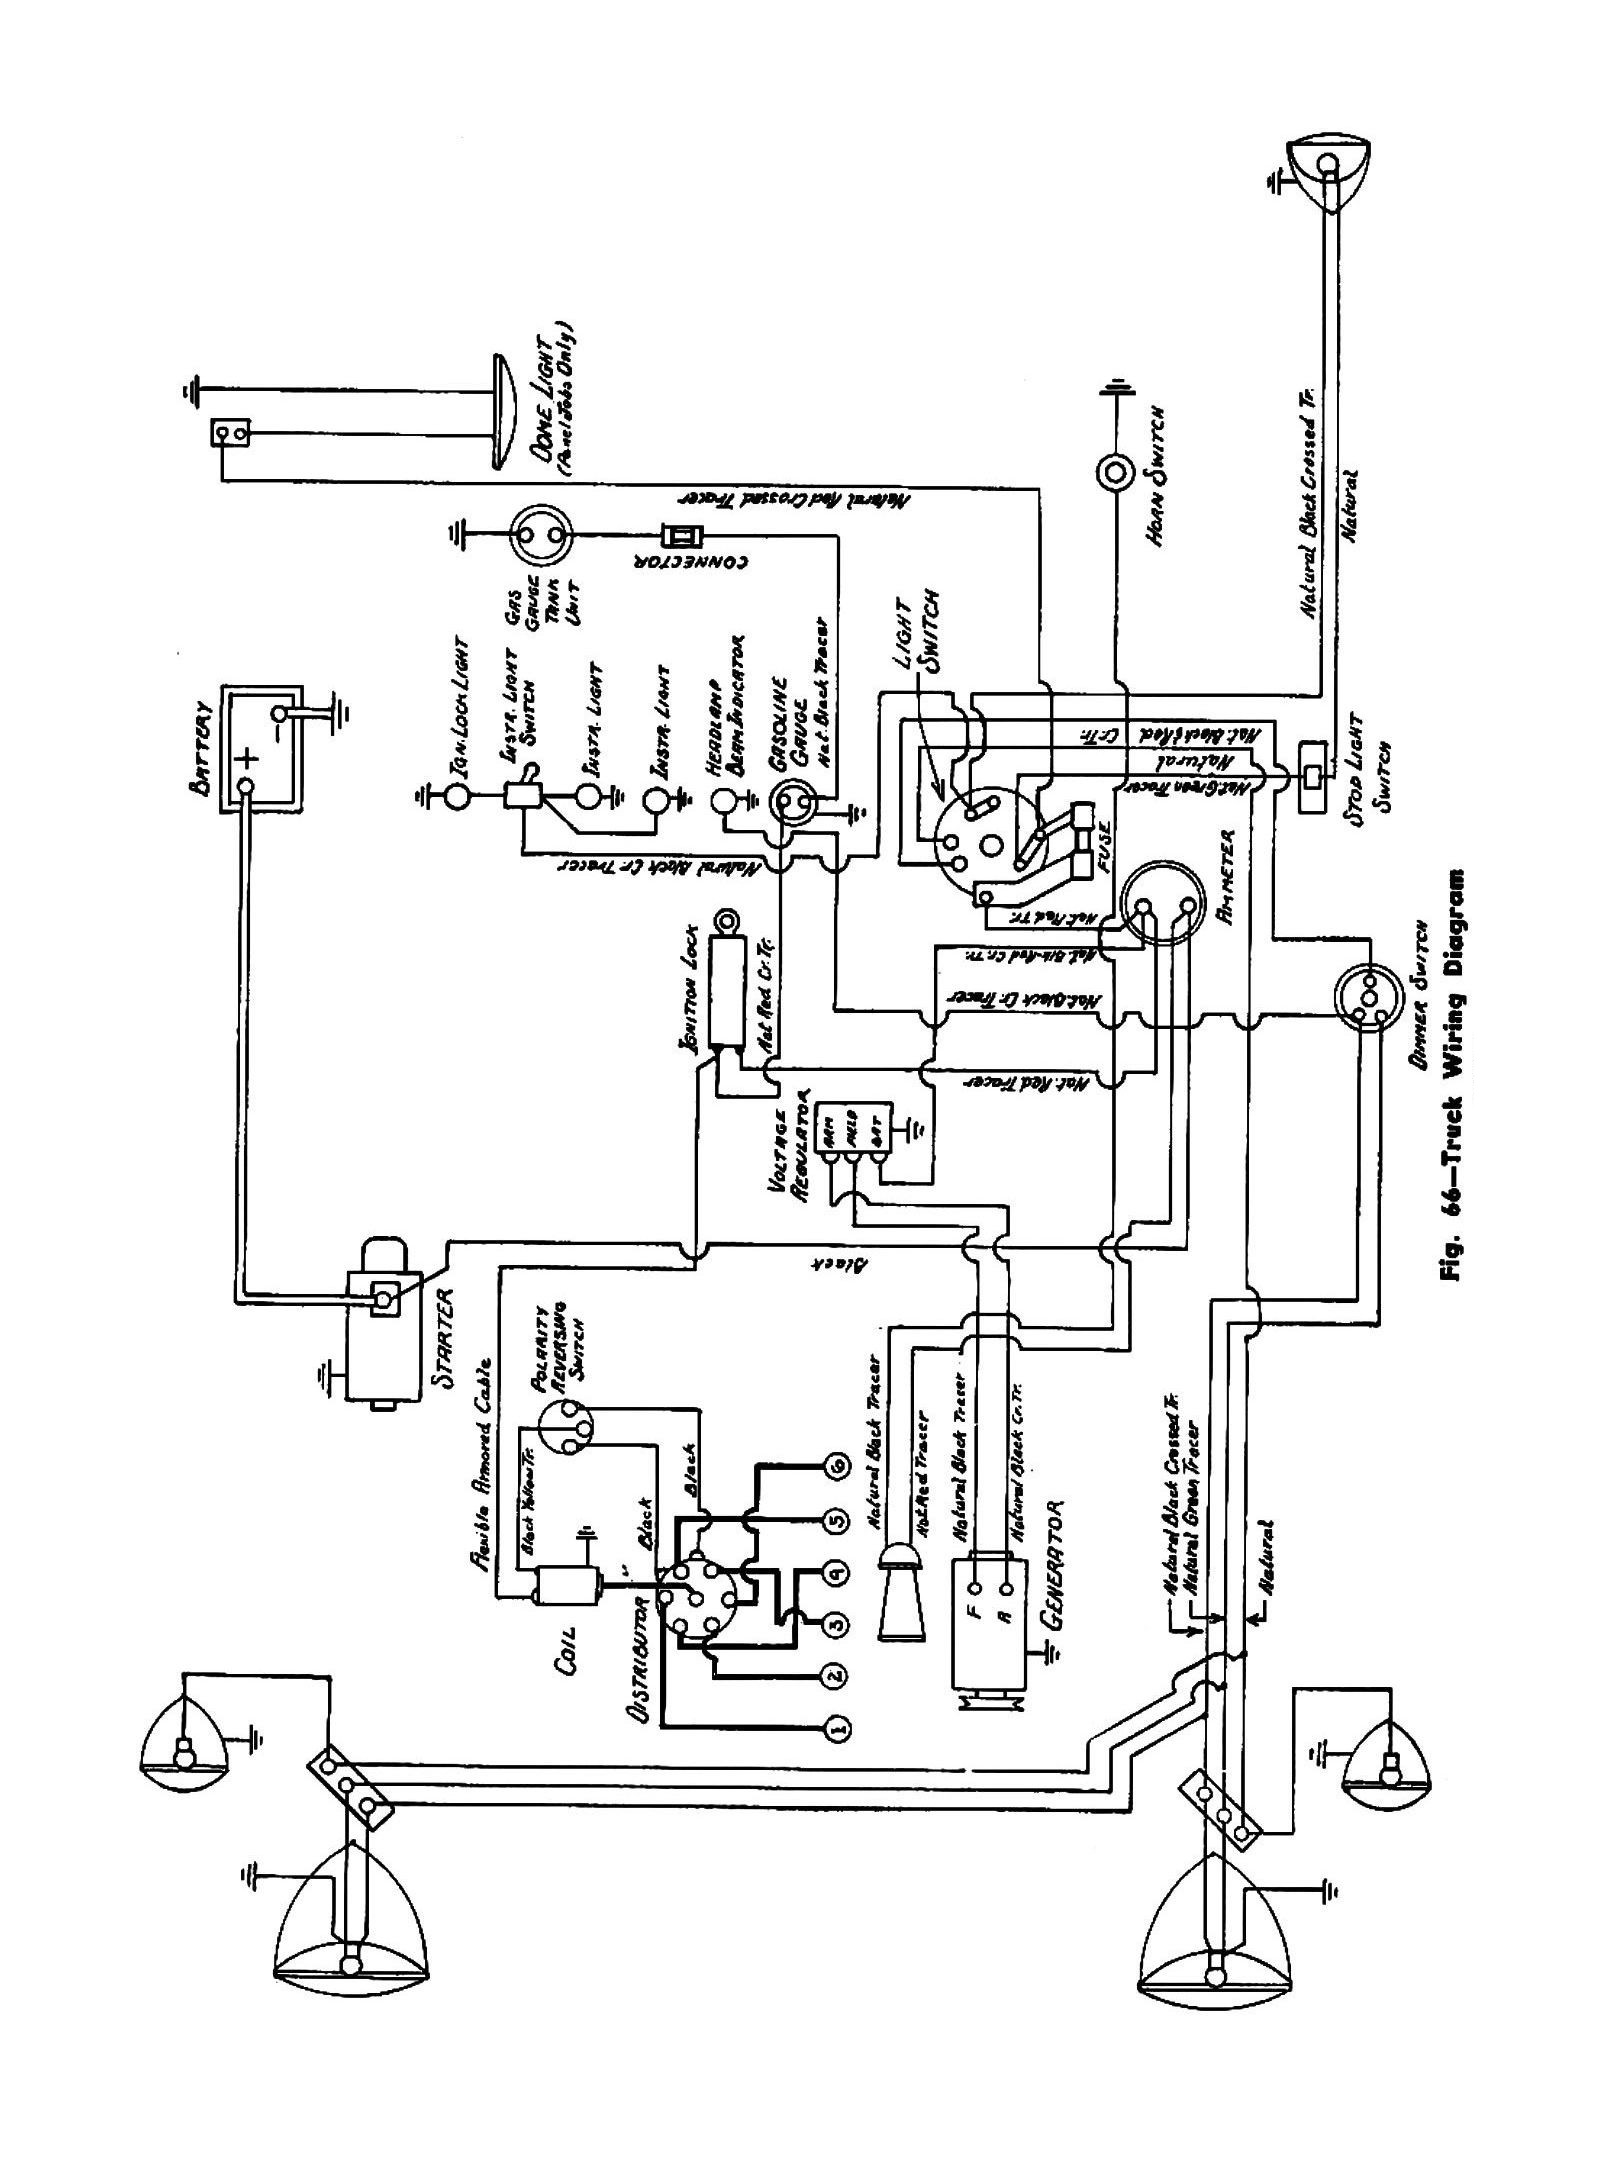 1946 chevy truck wiring diagram data wiring diagram blog 59 Chevy Truck Wiring Diagram 1946 chevy truck wiring diagram